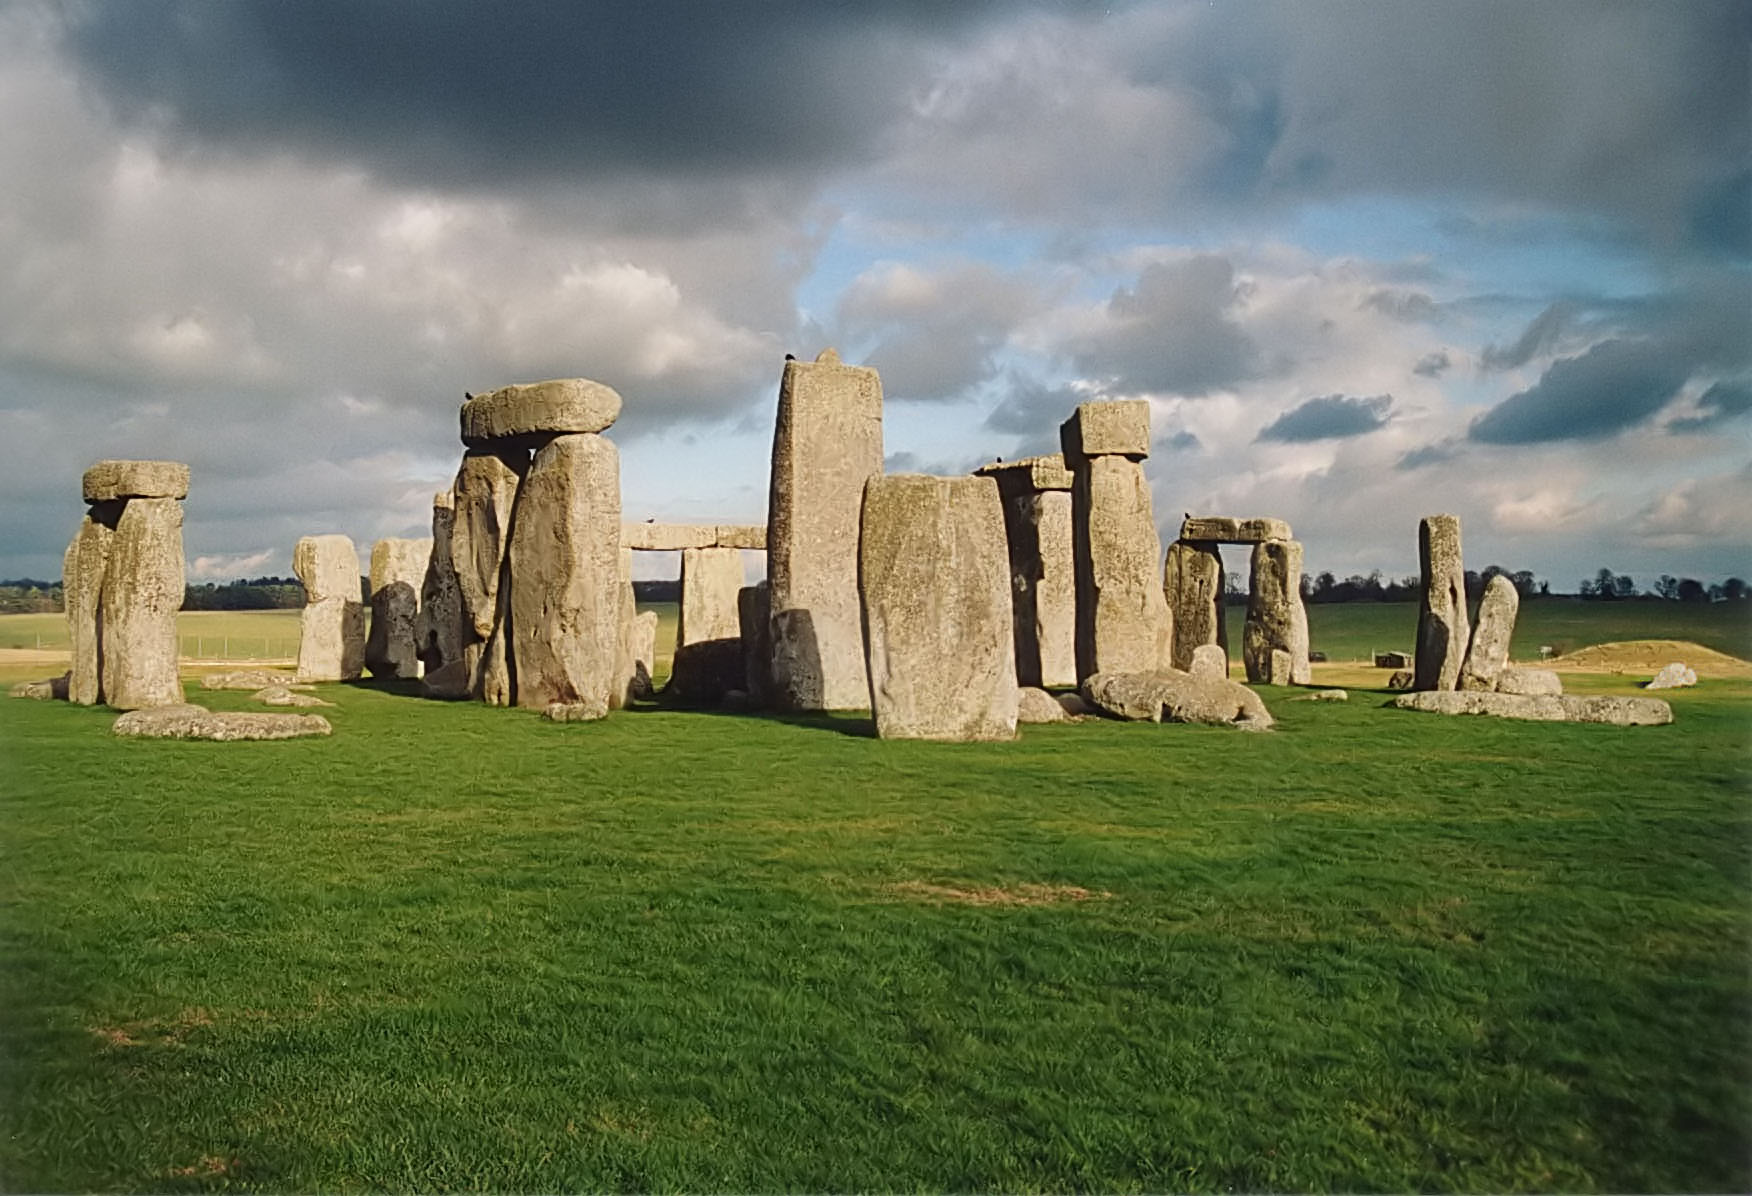 http://upload.wikimedia.org/wikipedia/commons/d/da/Stonehenge_back_wide.jpg